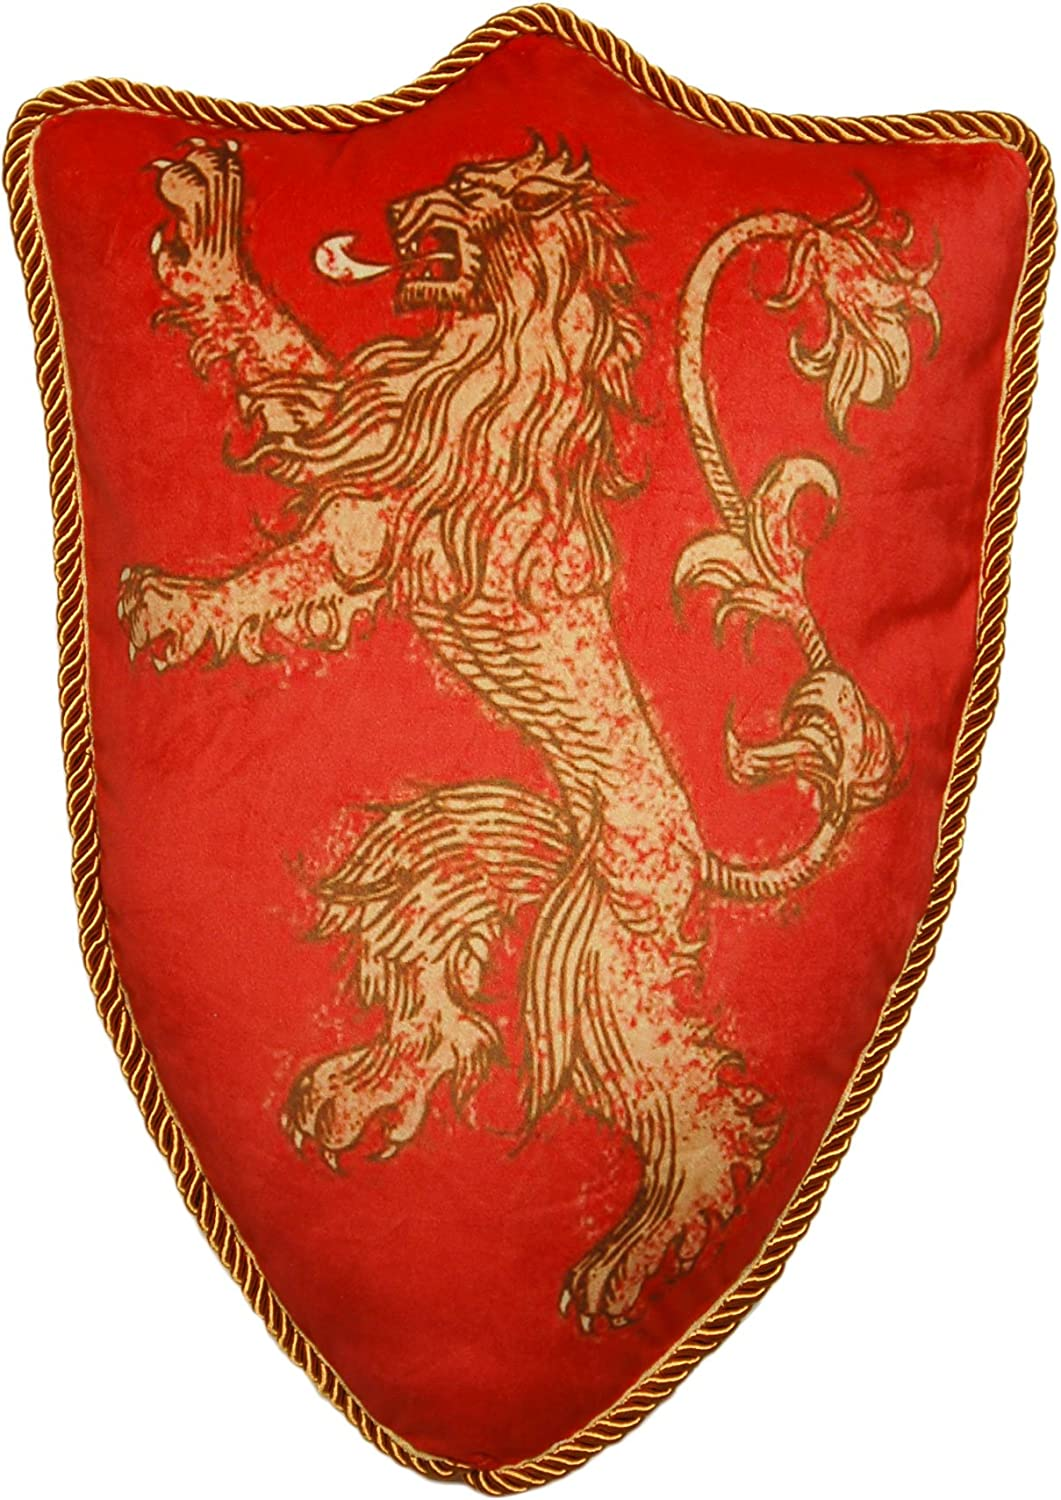 Game of Thrones House Lannister Lion Sigil Throw Plush Pillow